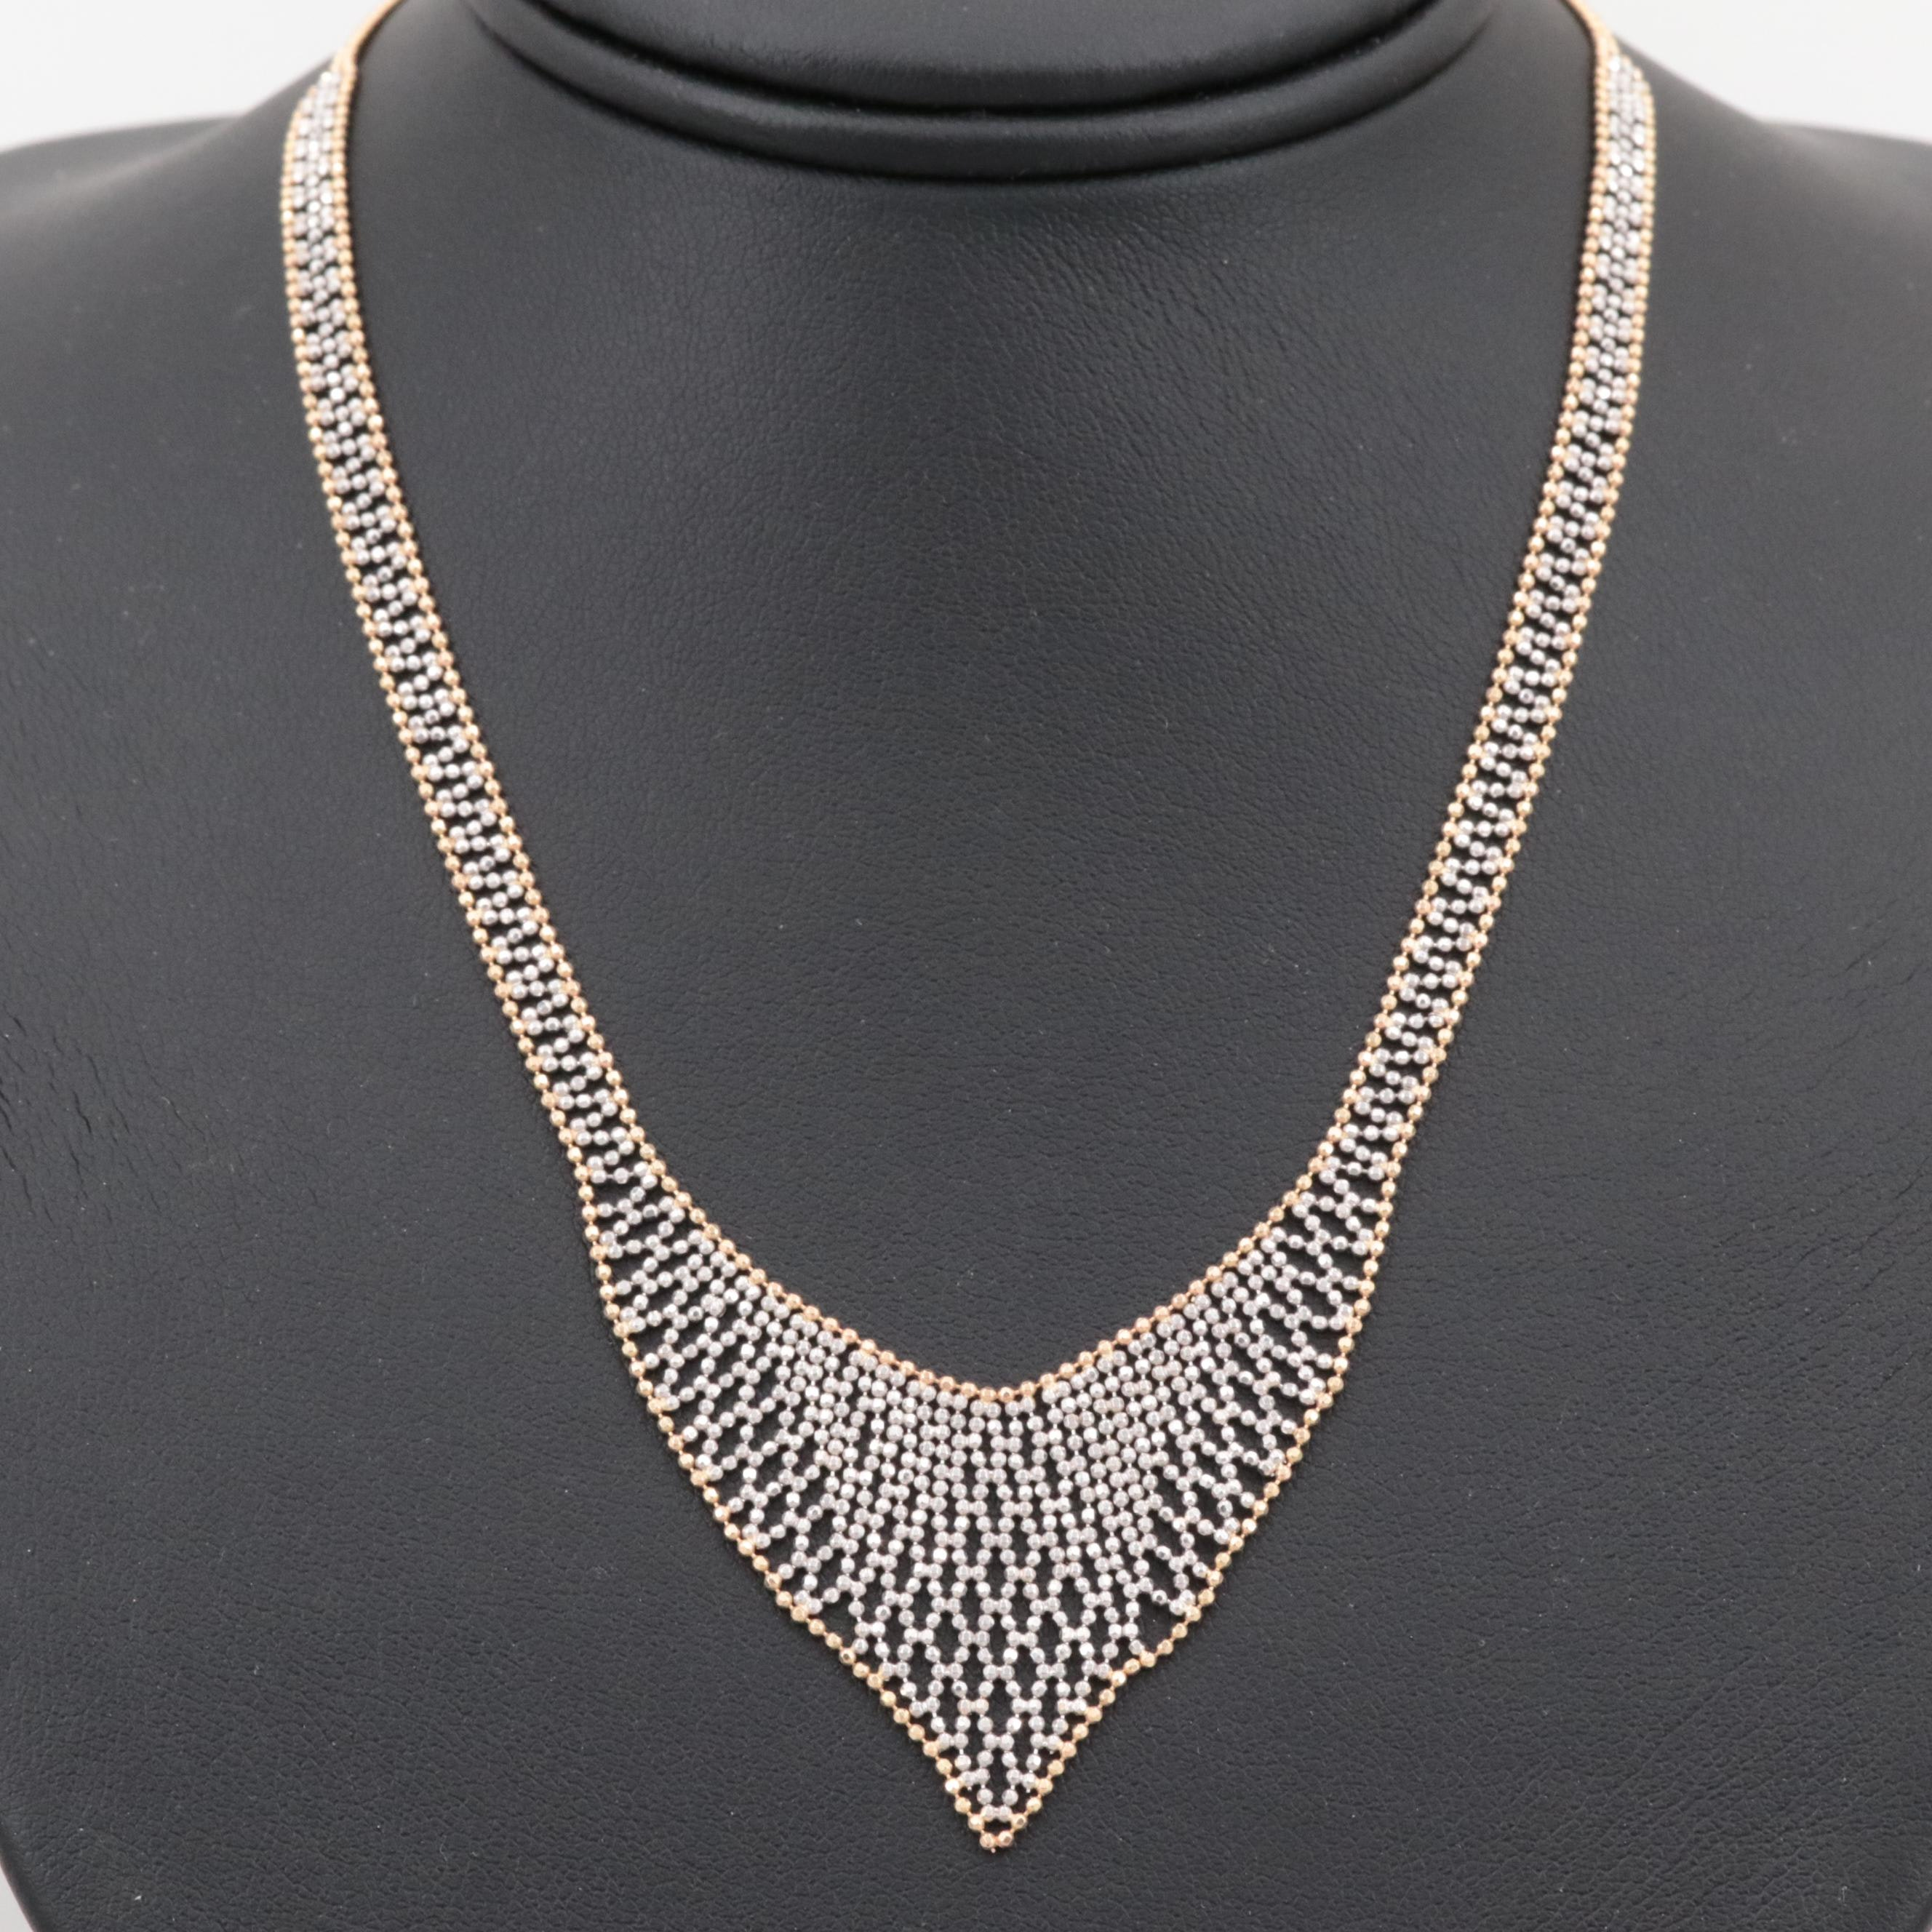 14K Yellow and White Gold Ball Chain Necklace